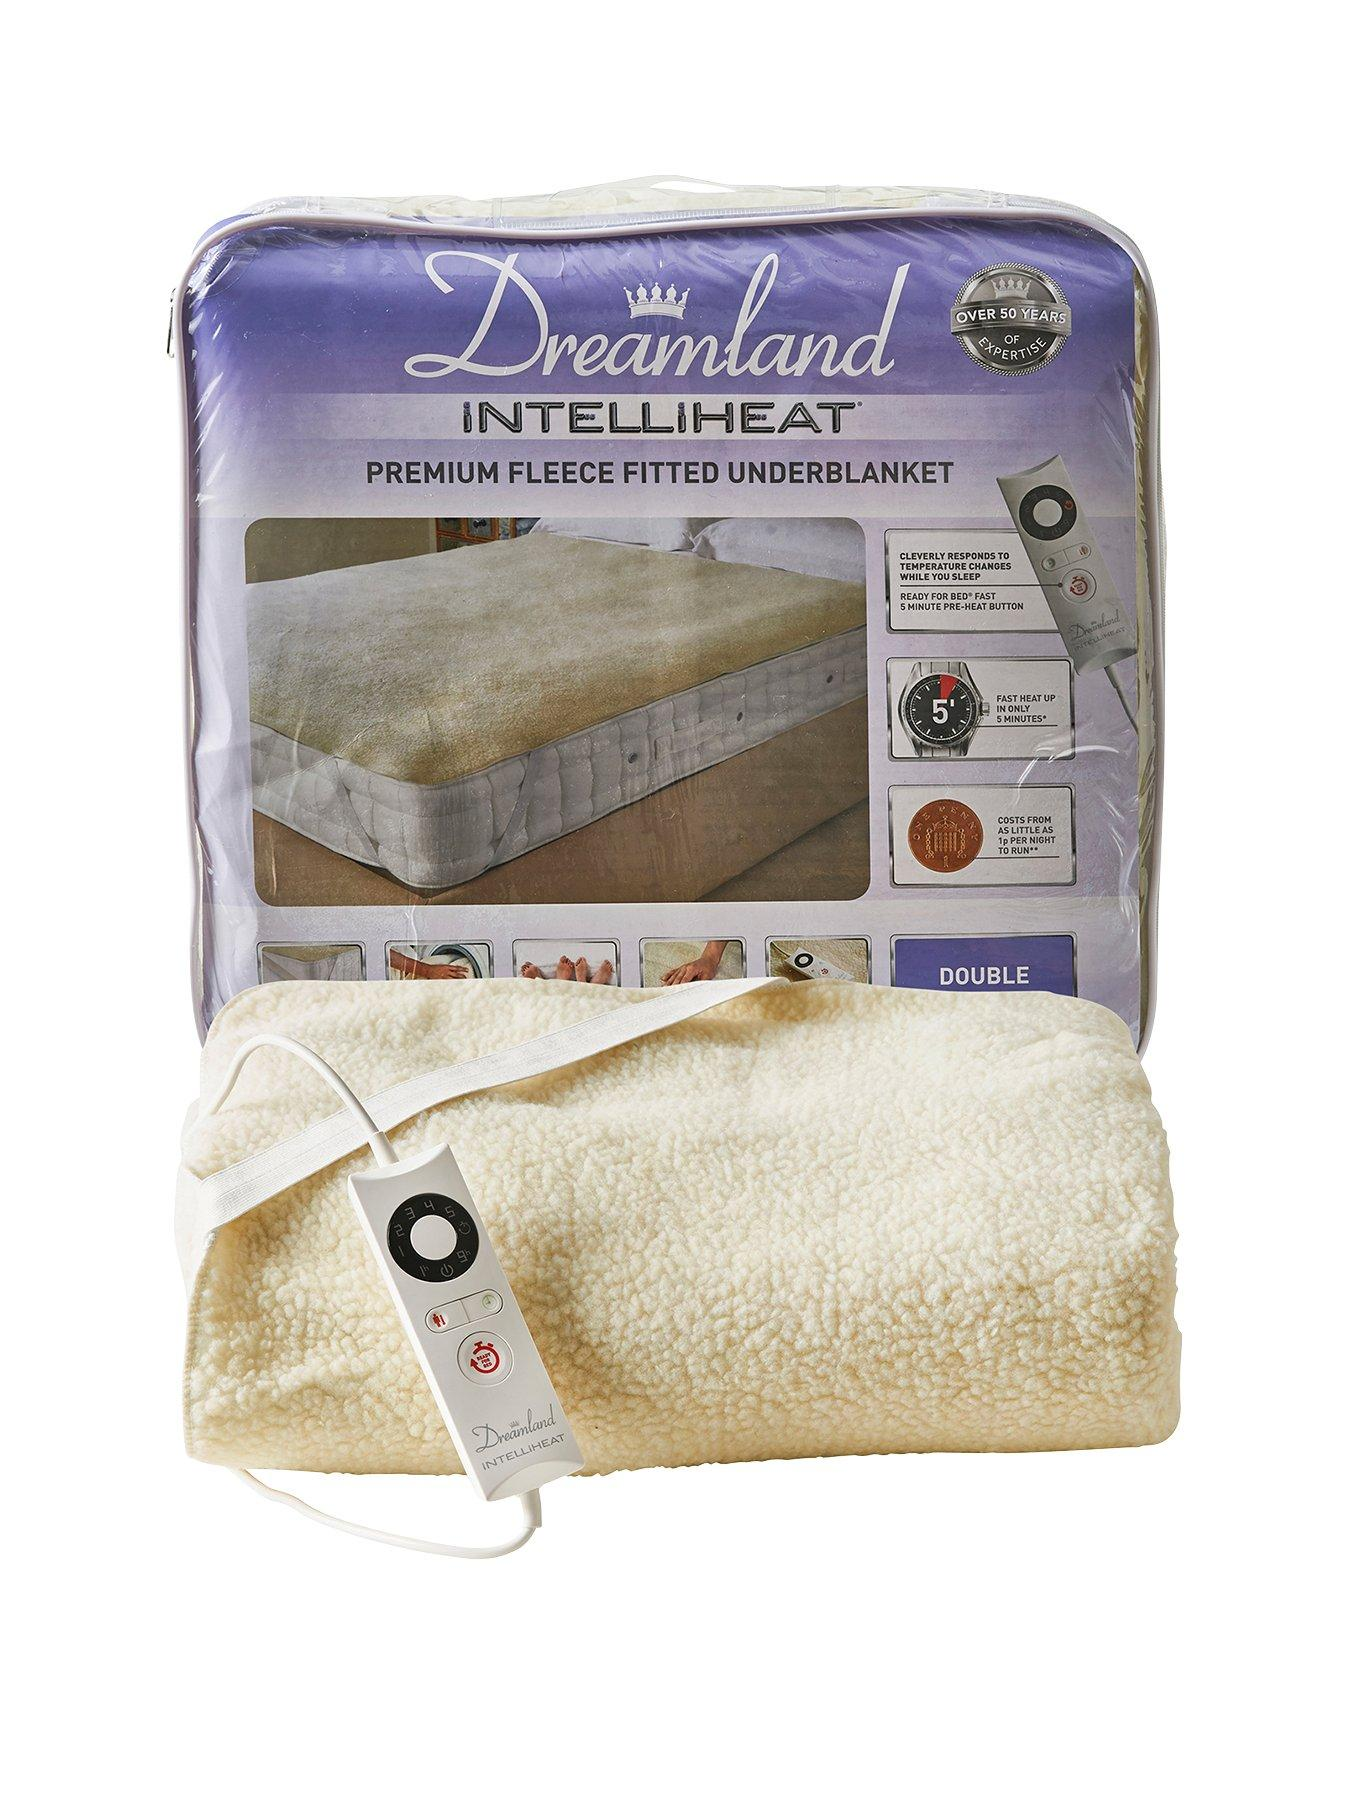 Compare prices for Dreamland Intelliheat Fleecy Underblanket